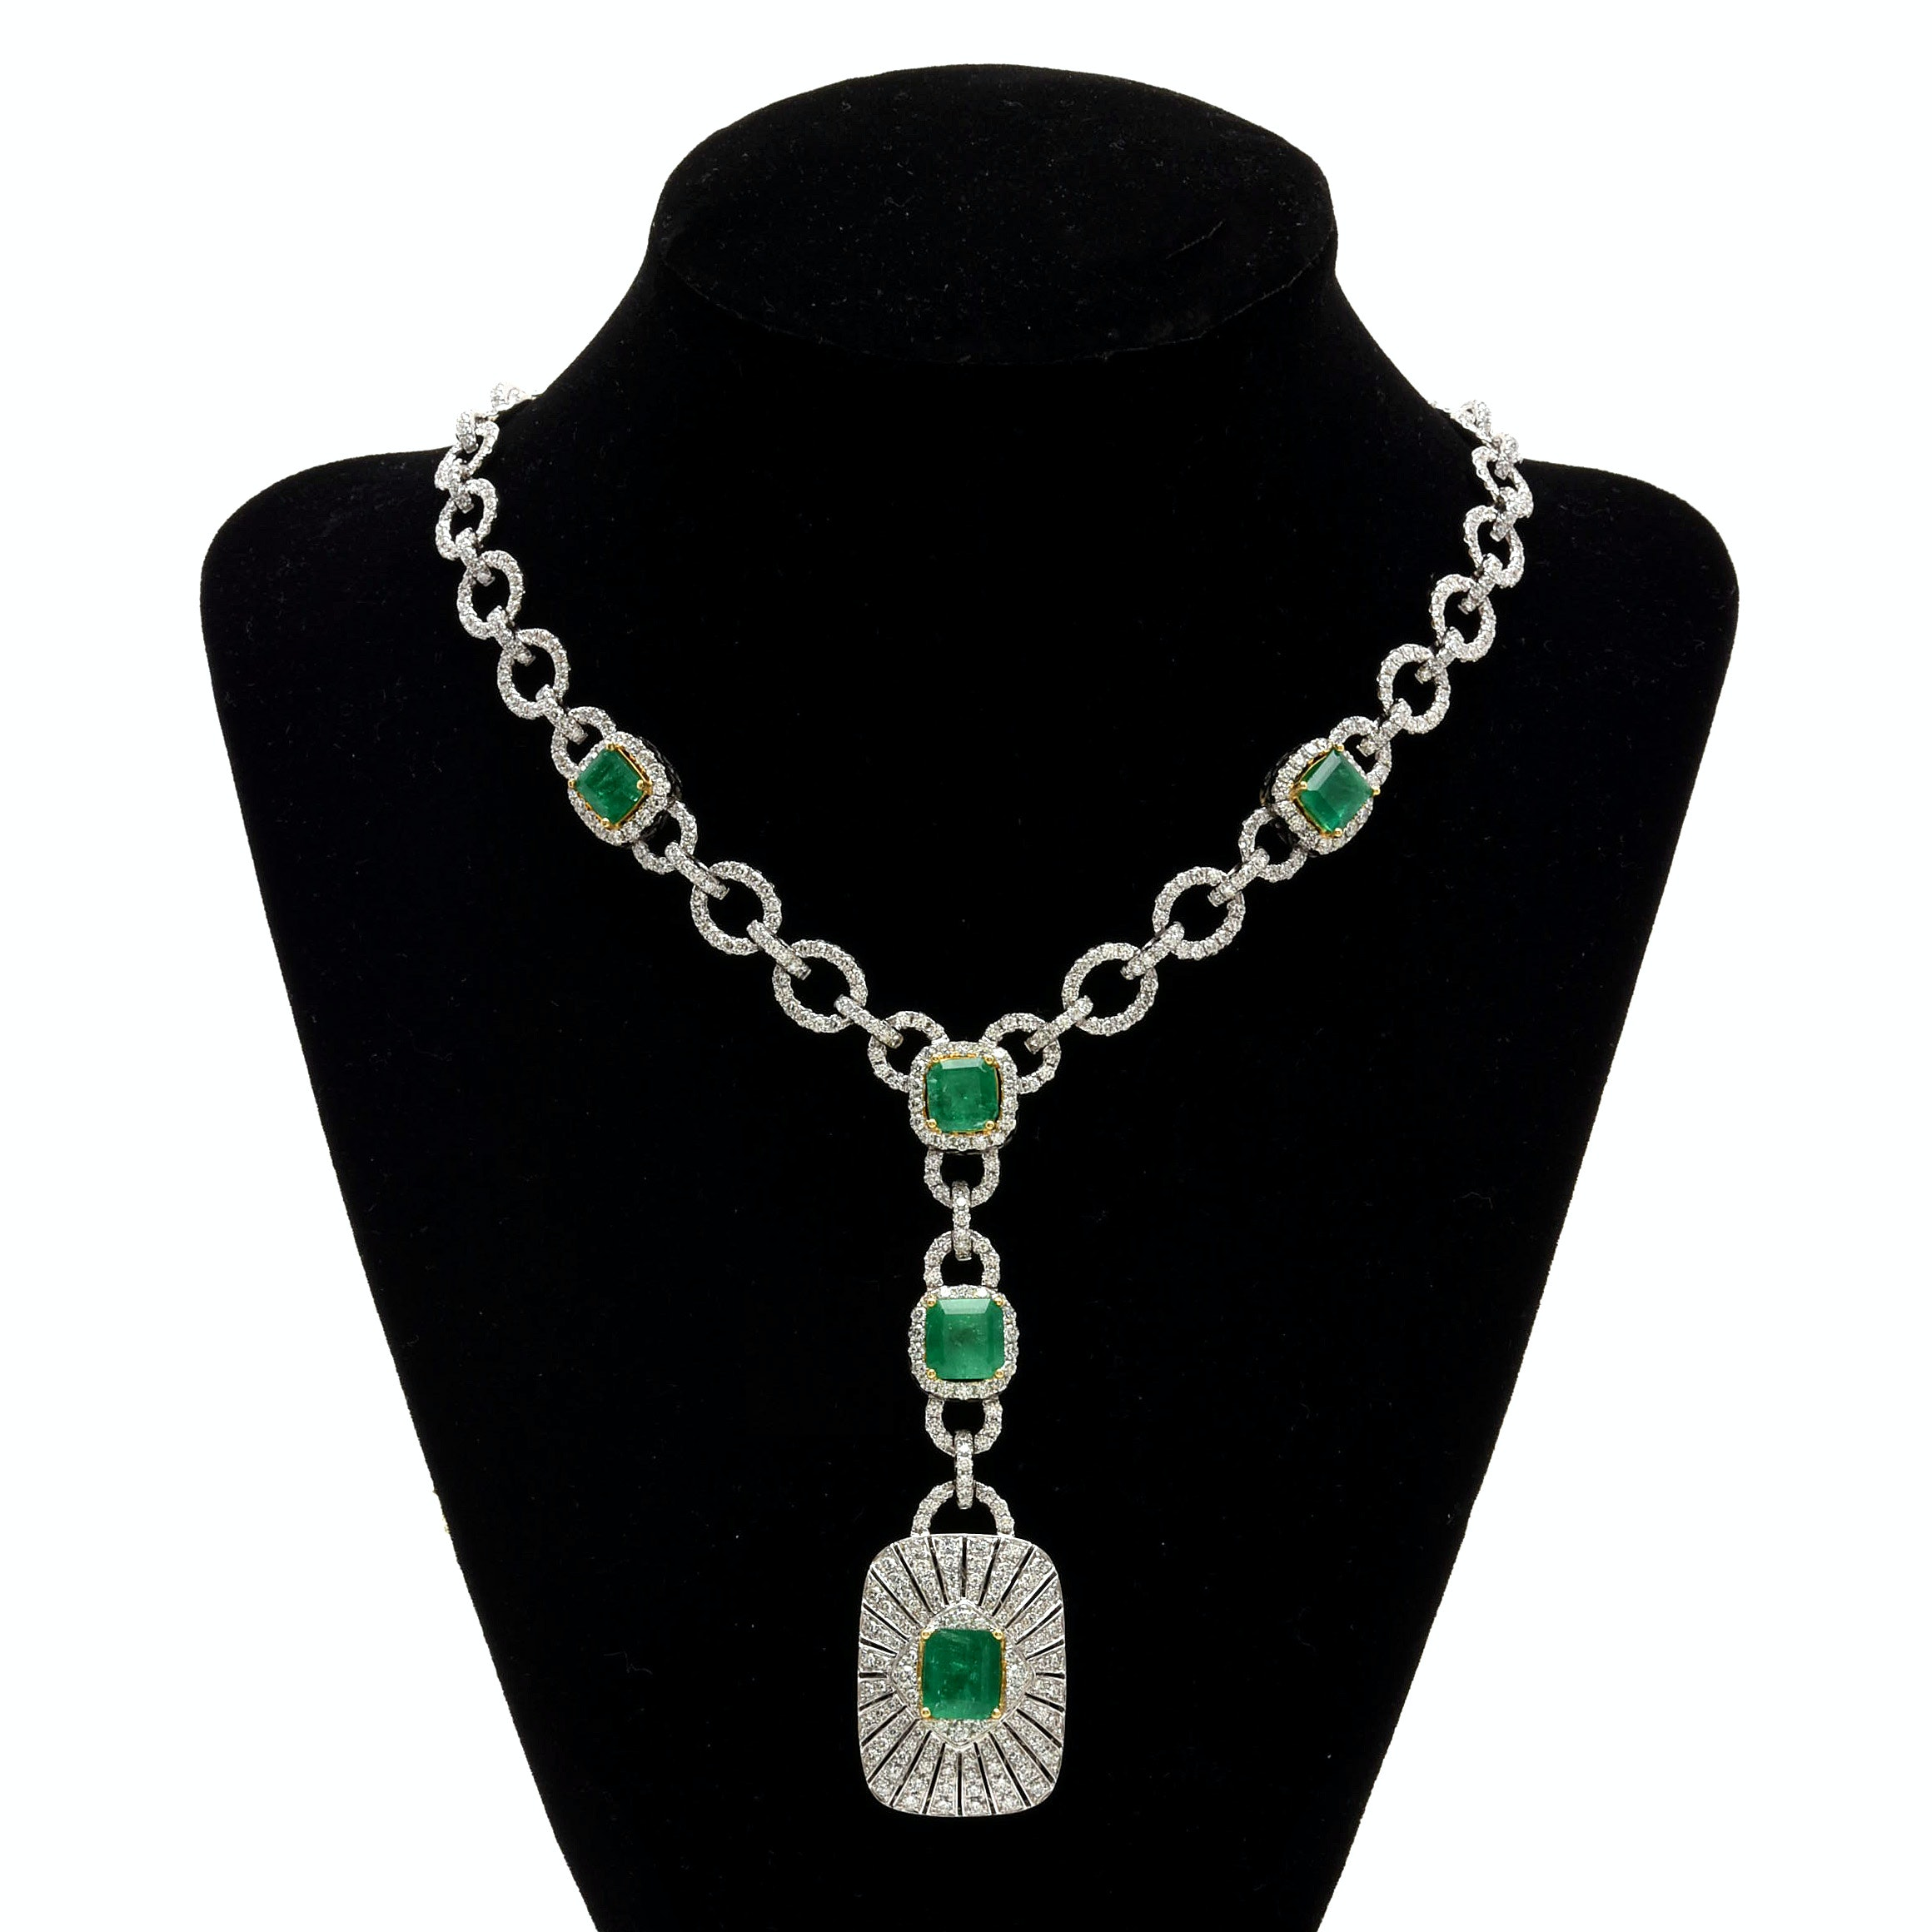 18K White Gold 10.46 CTW Emerald and 15.08 CTW Diamond Necklace